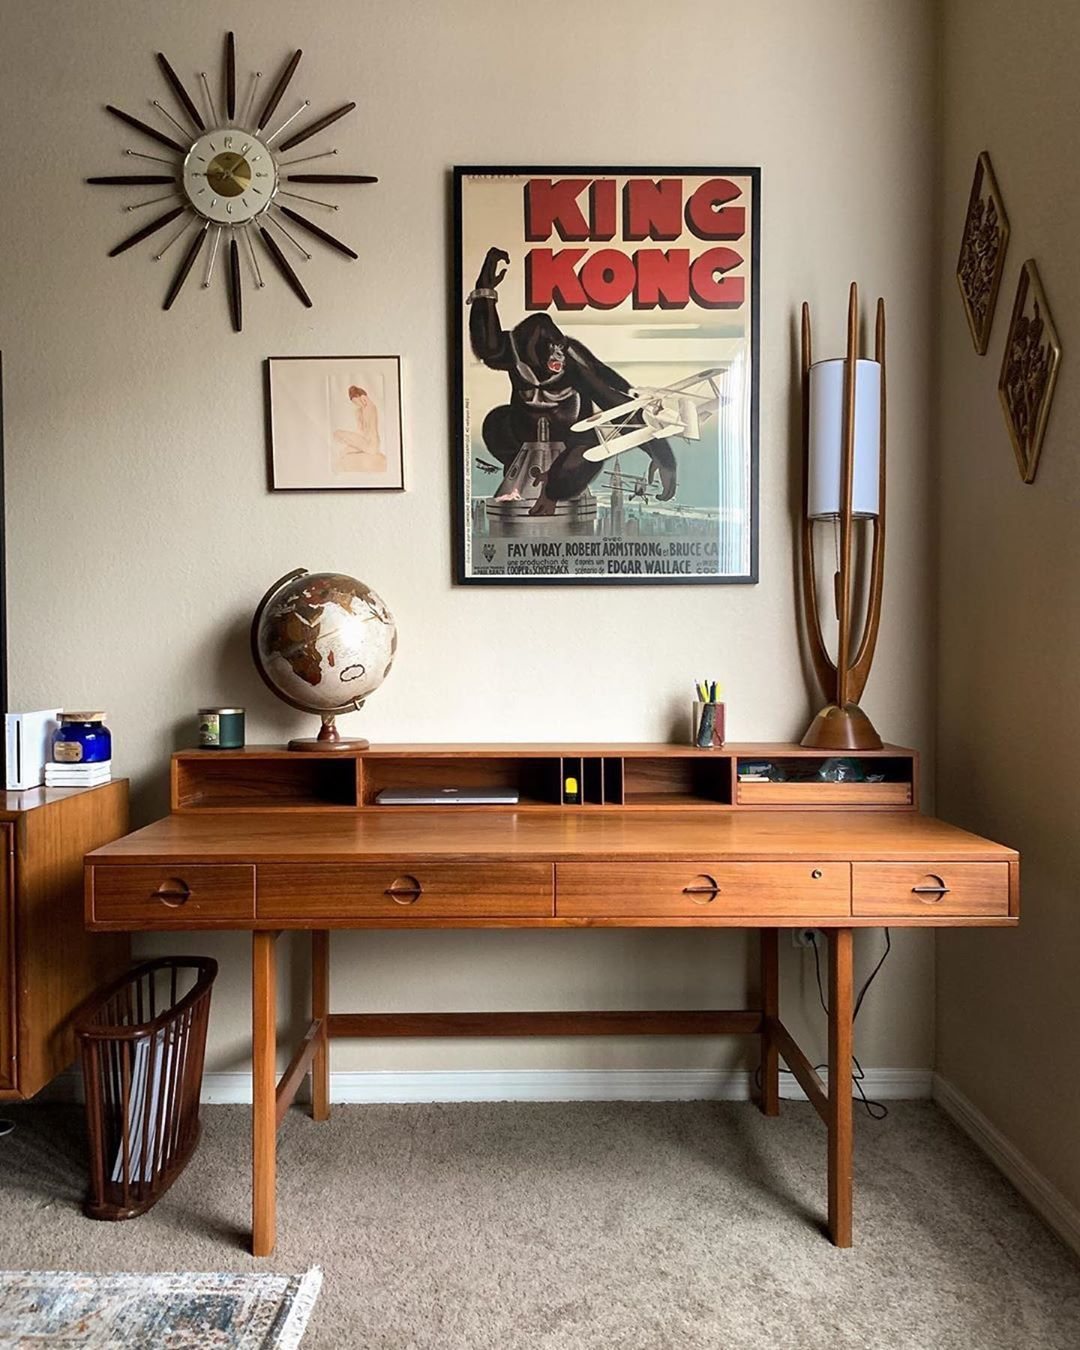 """Everything Mid-Century on Instagram: """"Good thing this isn't my desk, I'd never stop working. 📸: @midmodandretro"""""""